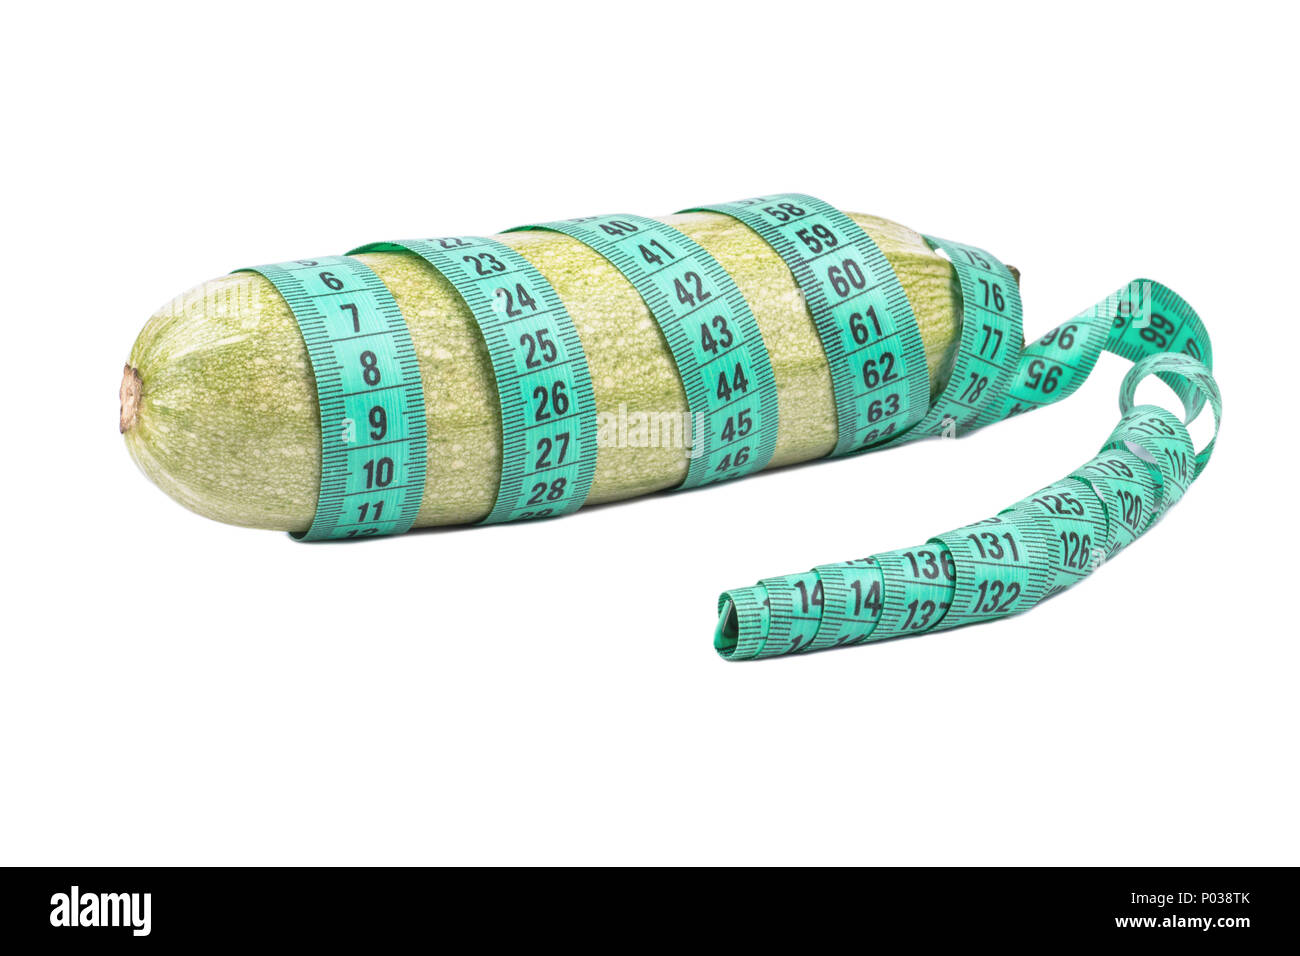 Green vegetable marrow wrapped meter on a white background - Stock Image